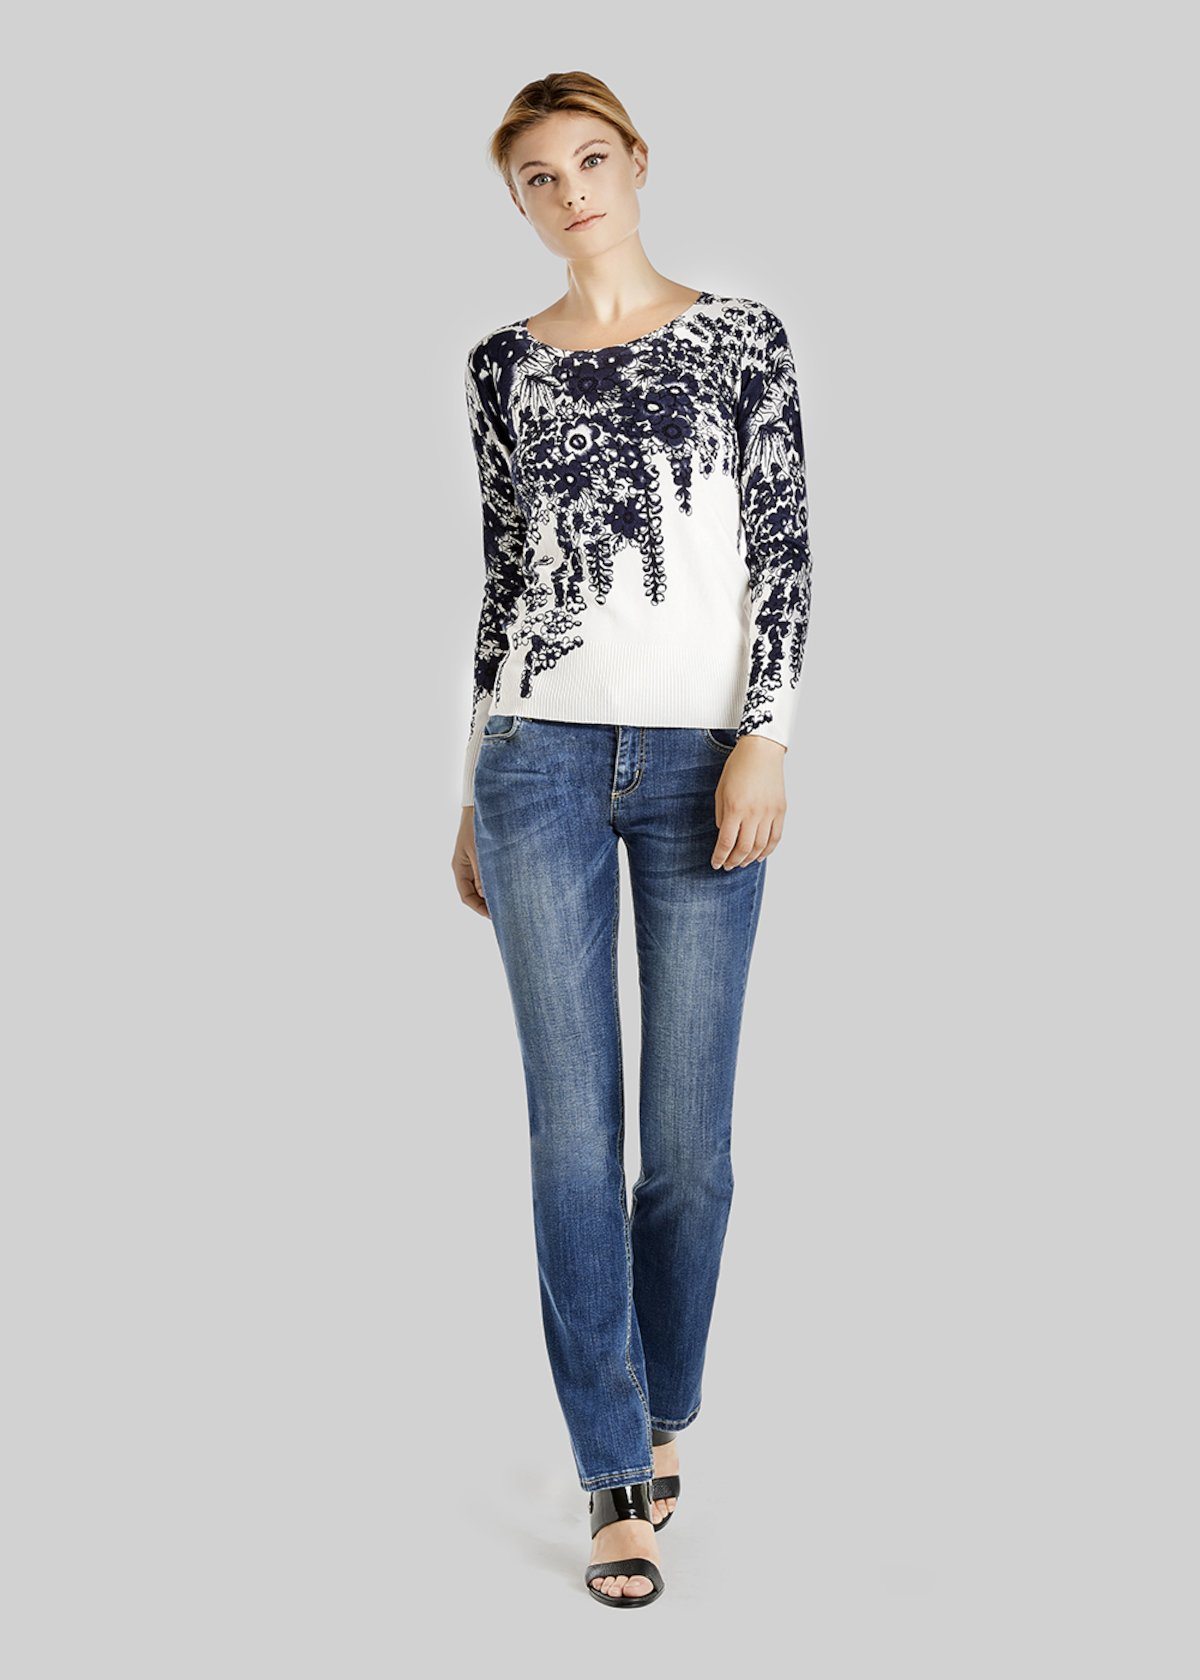 Marcel sweater with contrast print